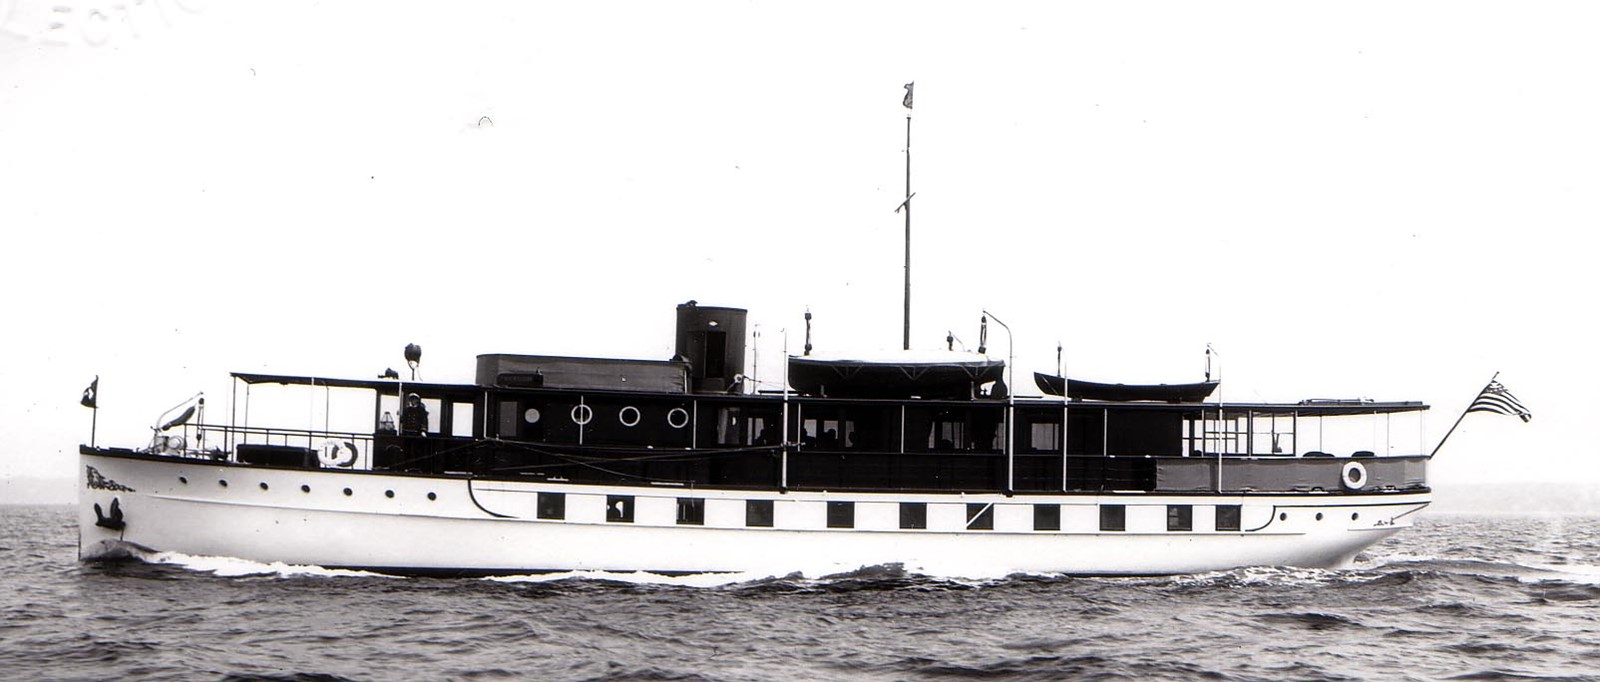 FREEDOM 1930's 1926 TRUMPY Mathis Fantail (Fractional Opportunity) Motor Yacht 2467401